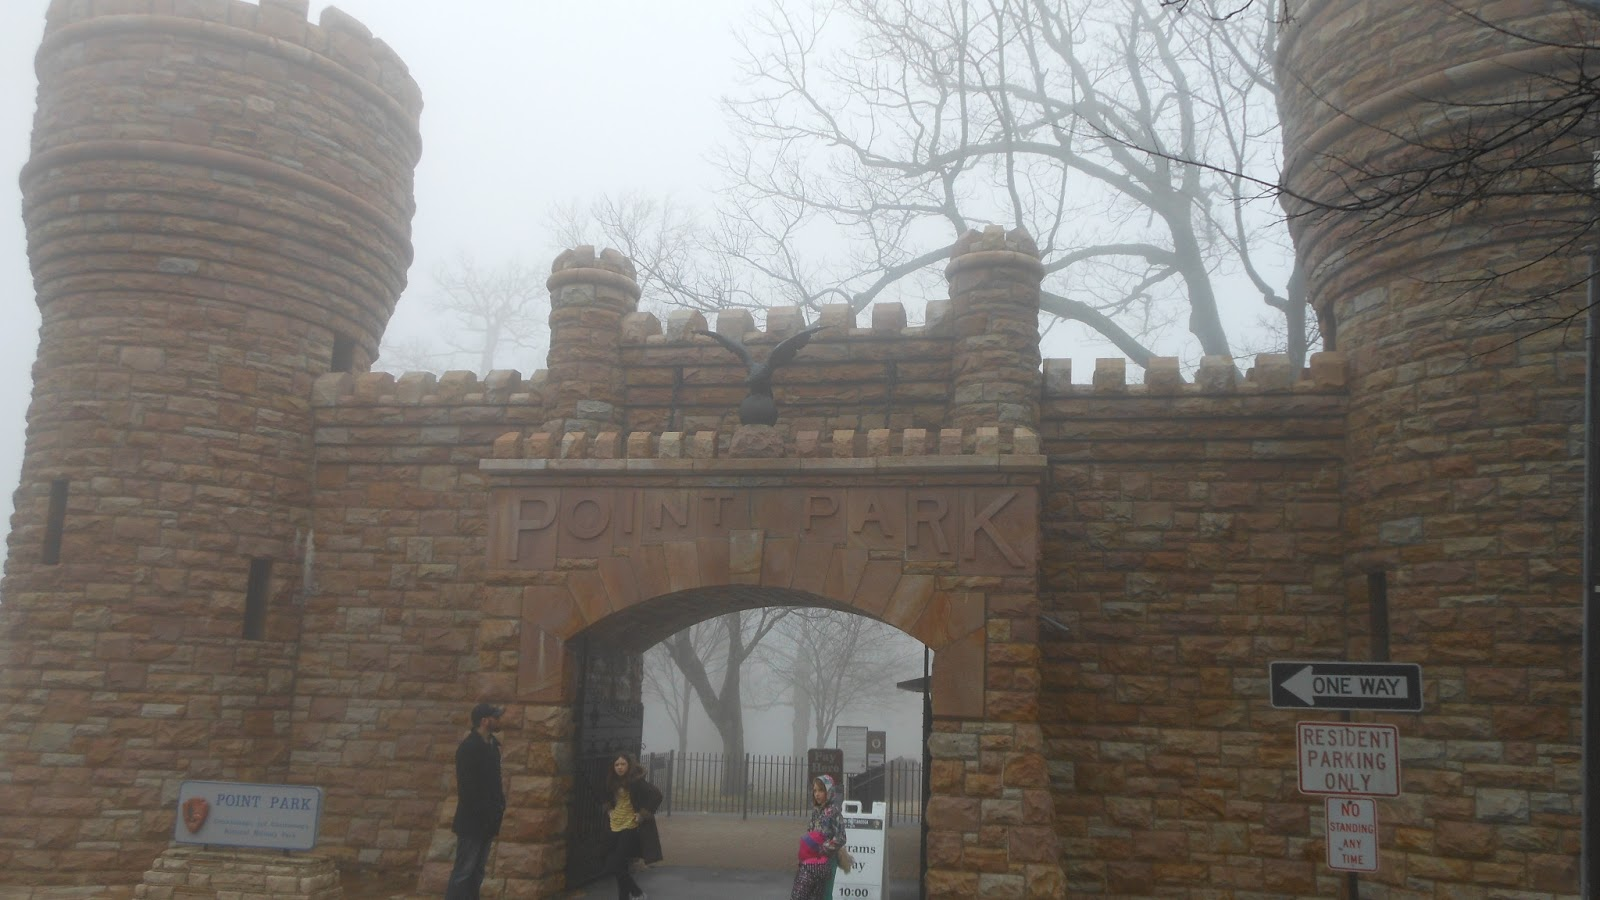 Point Park entrance 